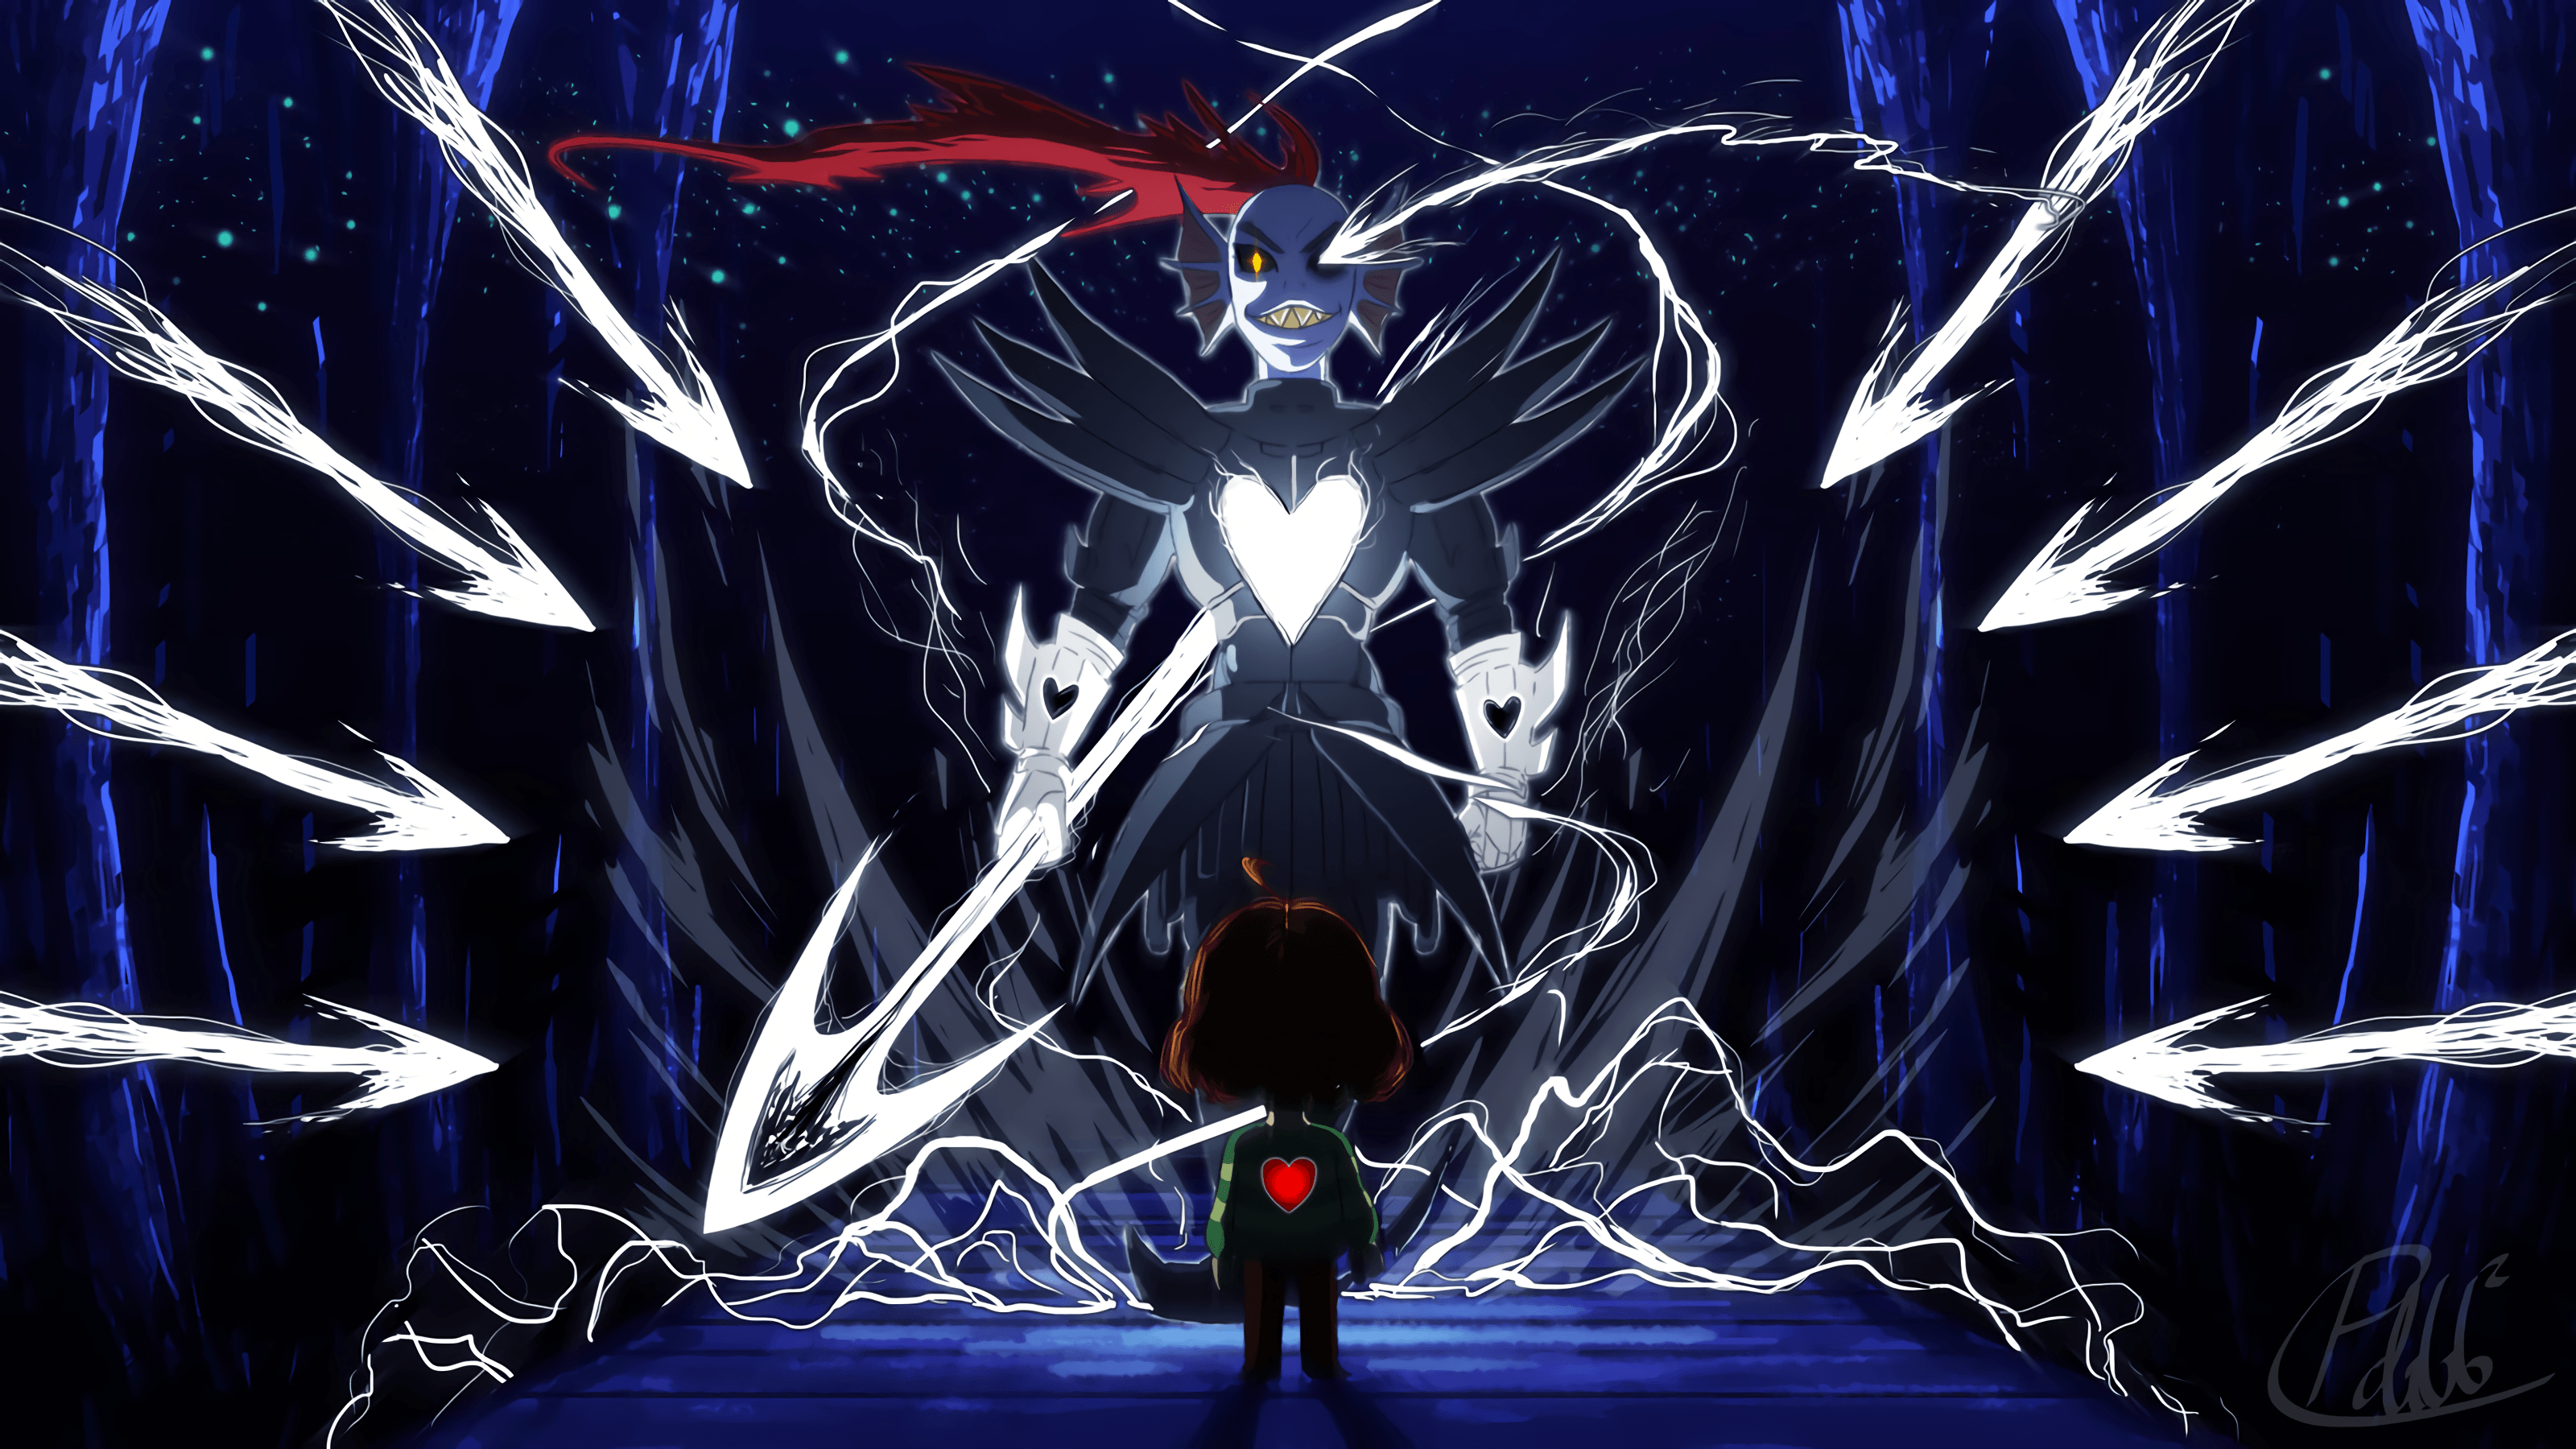 20 Chara (Undertale) HD Wallpapers | Backgrounds - Wallpaper Abyss